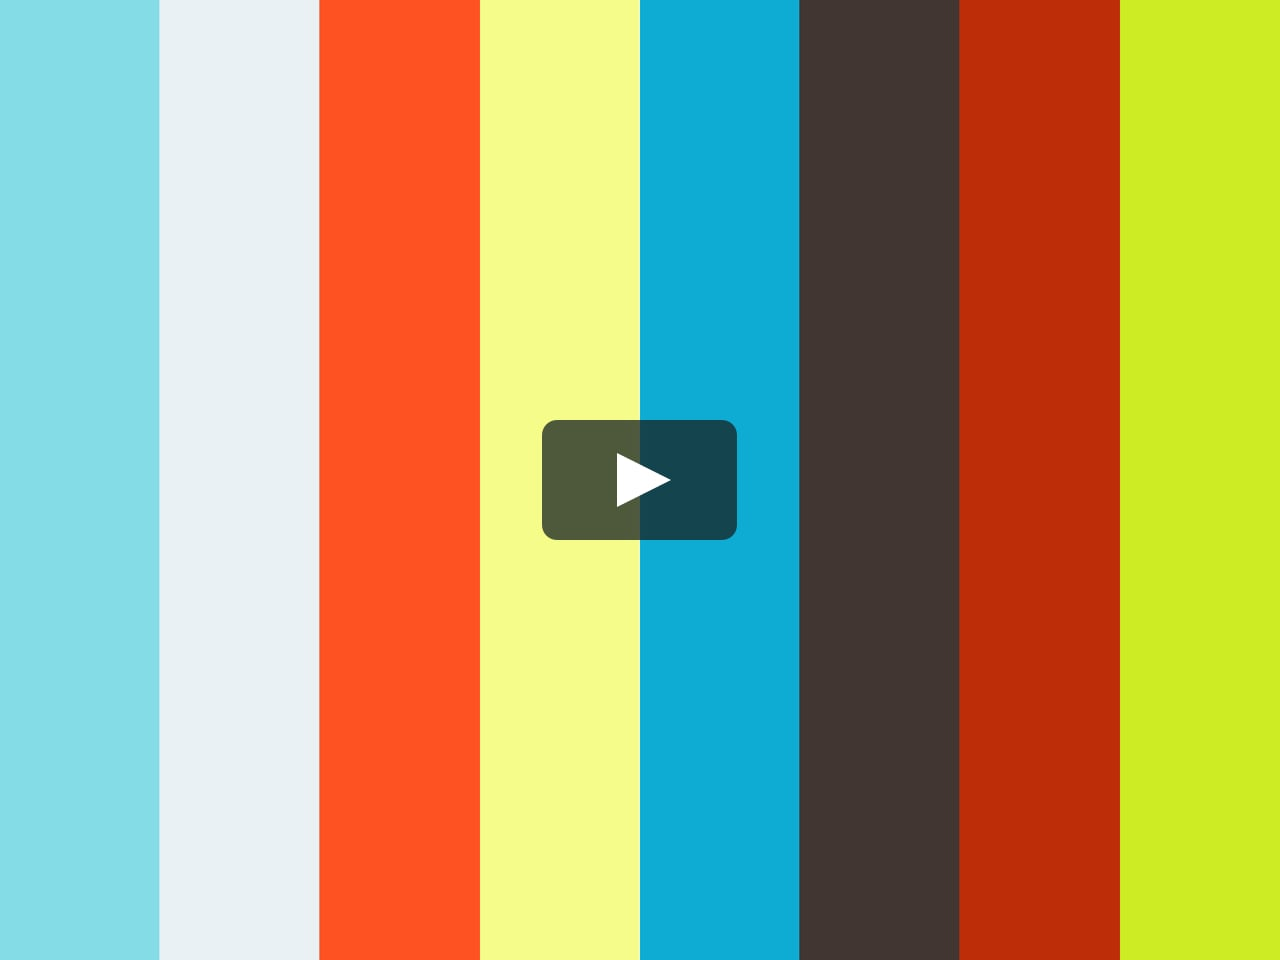 Module 5 Public Service Loan Forgiveness On Vimeo